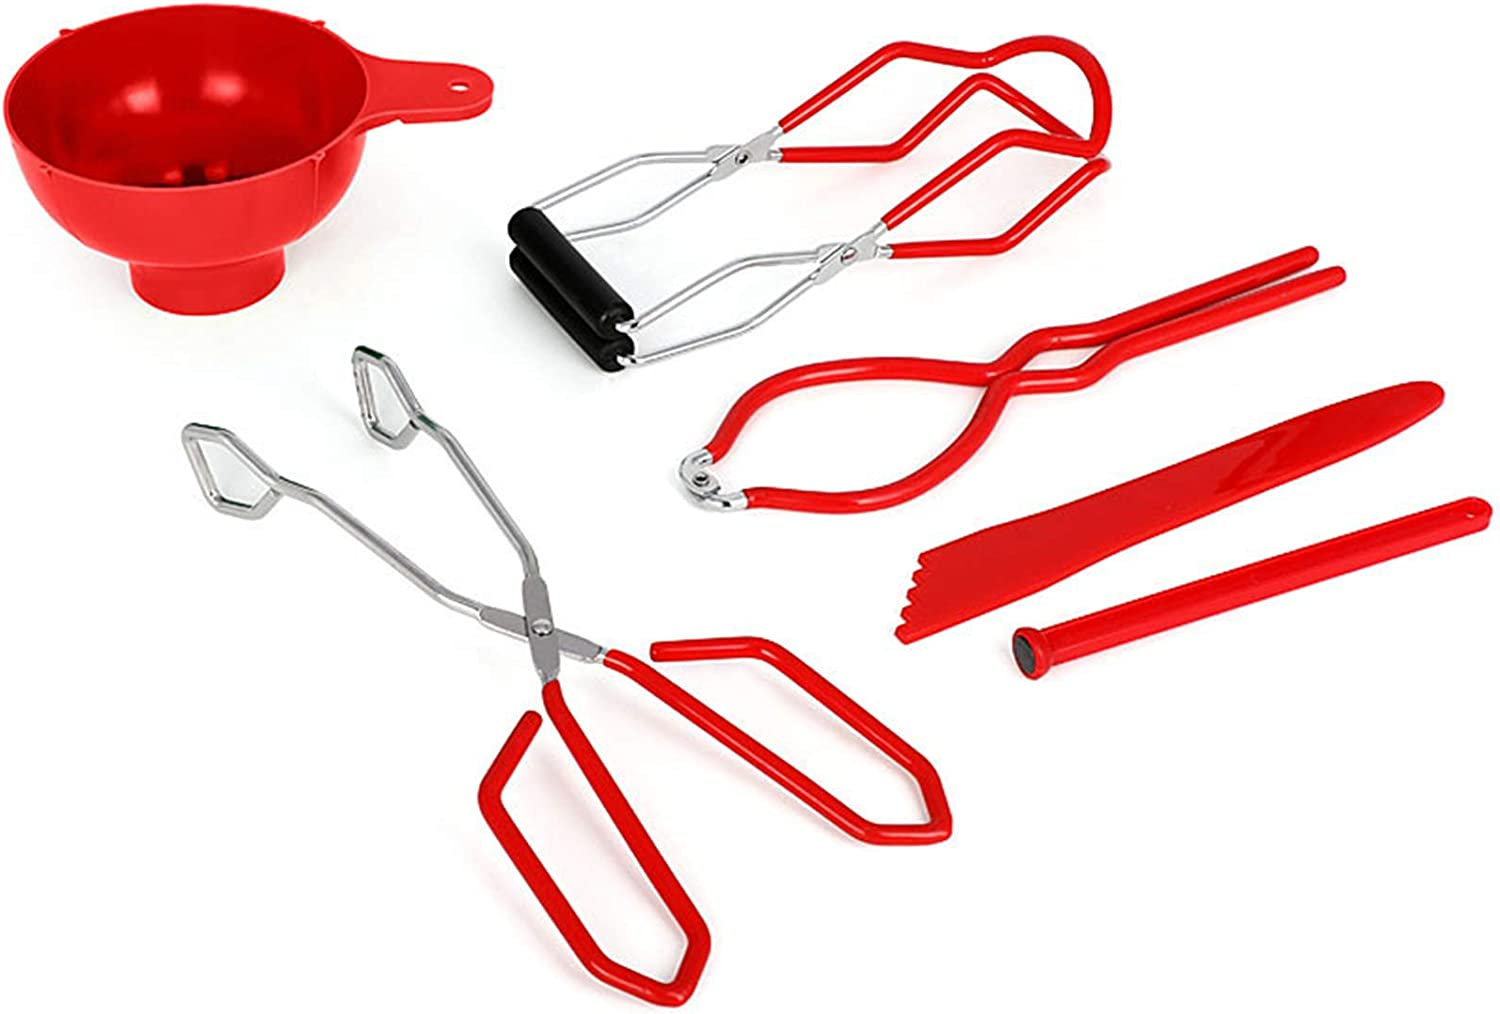 PB Canning Kit Canning Supplies Include Canning Funnel, Canning Jar Lifter, Jar Wrench, Lid Lifter, Canning Tongs, Bubble Popper/Bubble Measurer/Bubble Remover for Canning Jars and Mason Jars